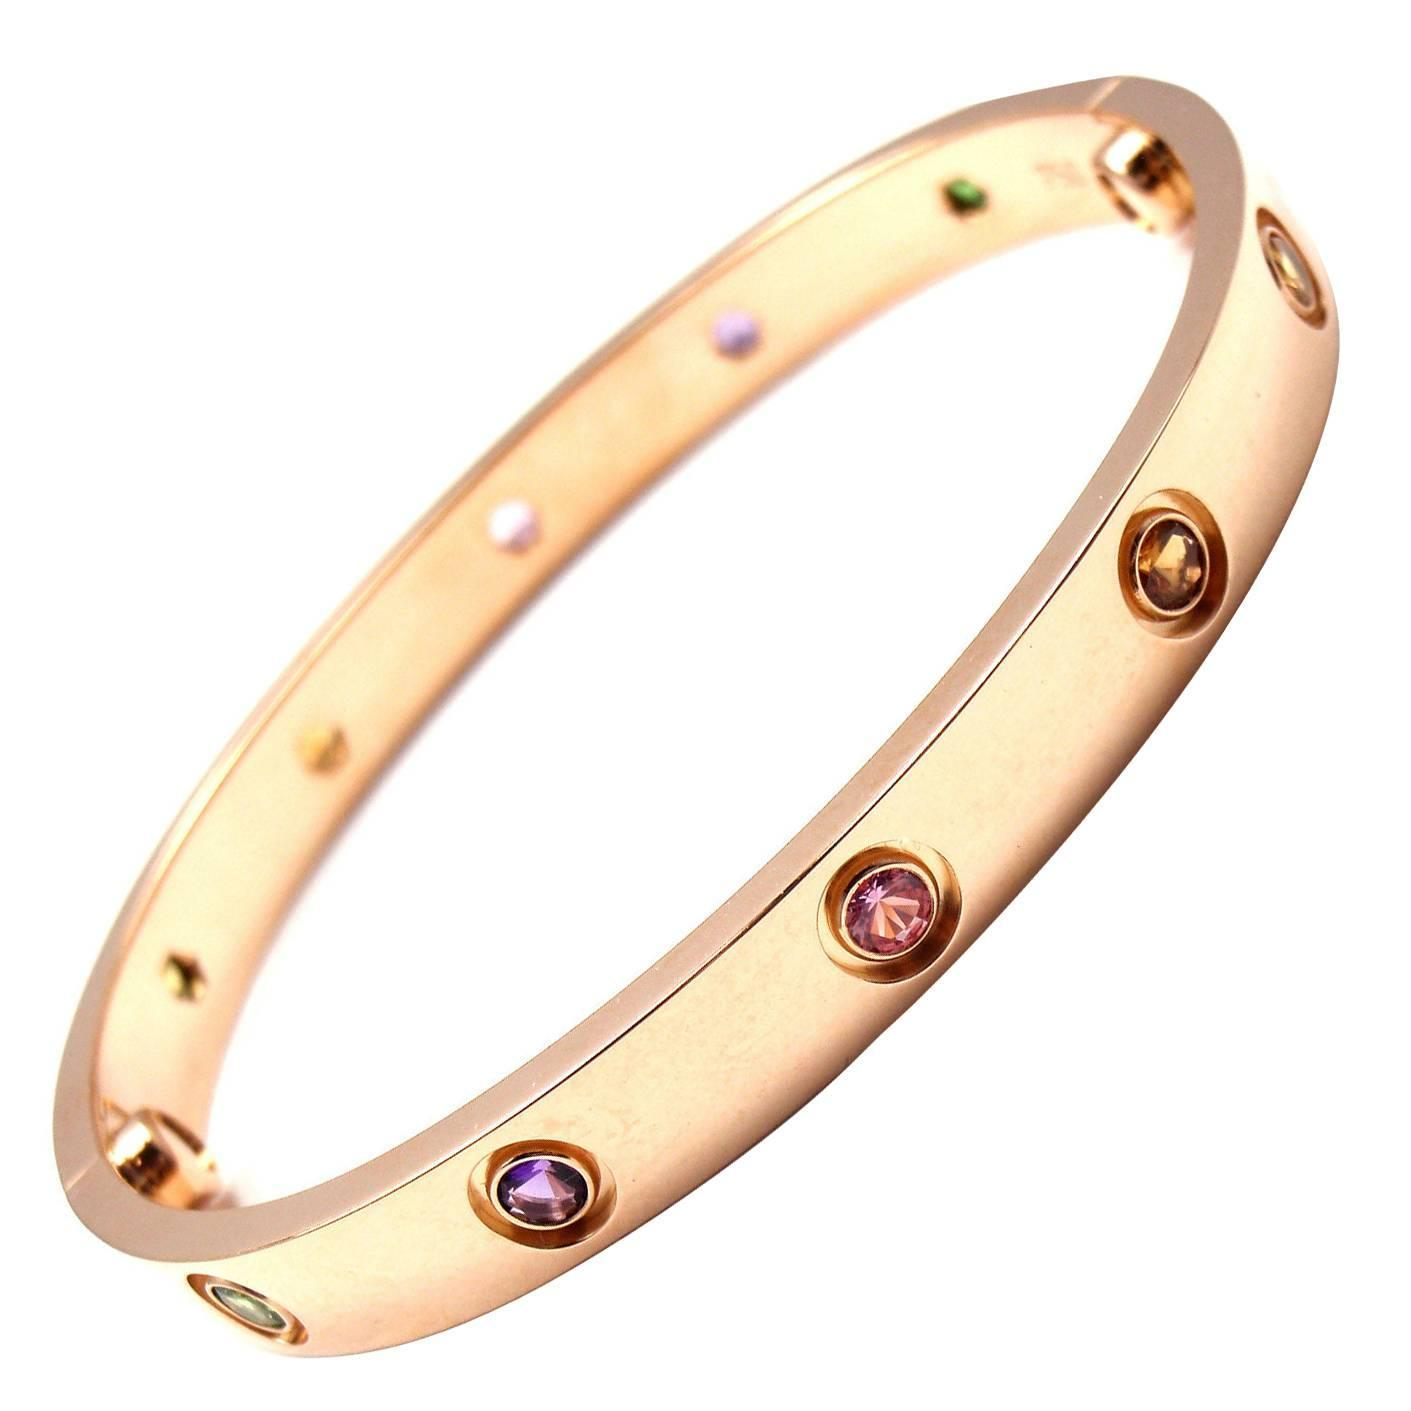 z screw bracelet exclusive jewelry j id cartier at bangle gold brace bangles bracelets love org tricolor